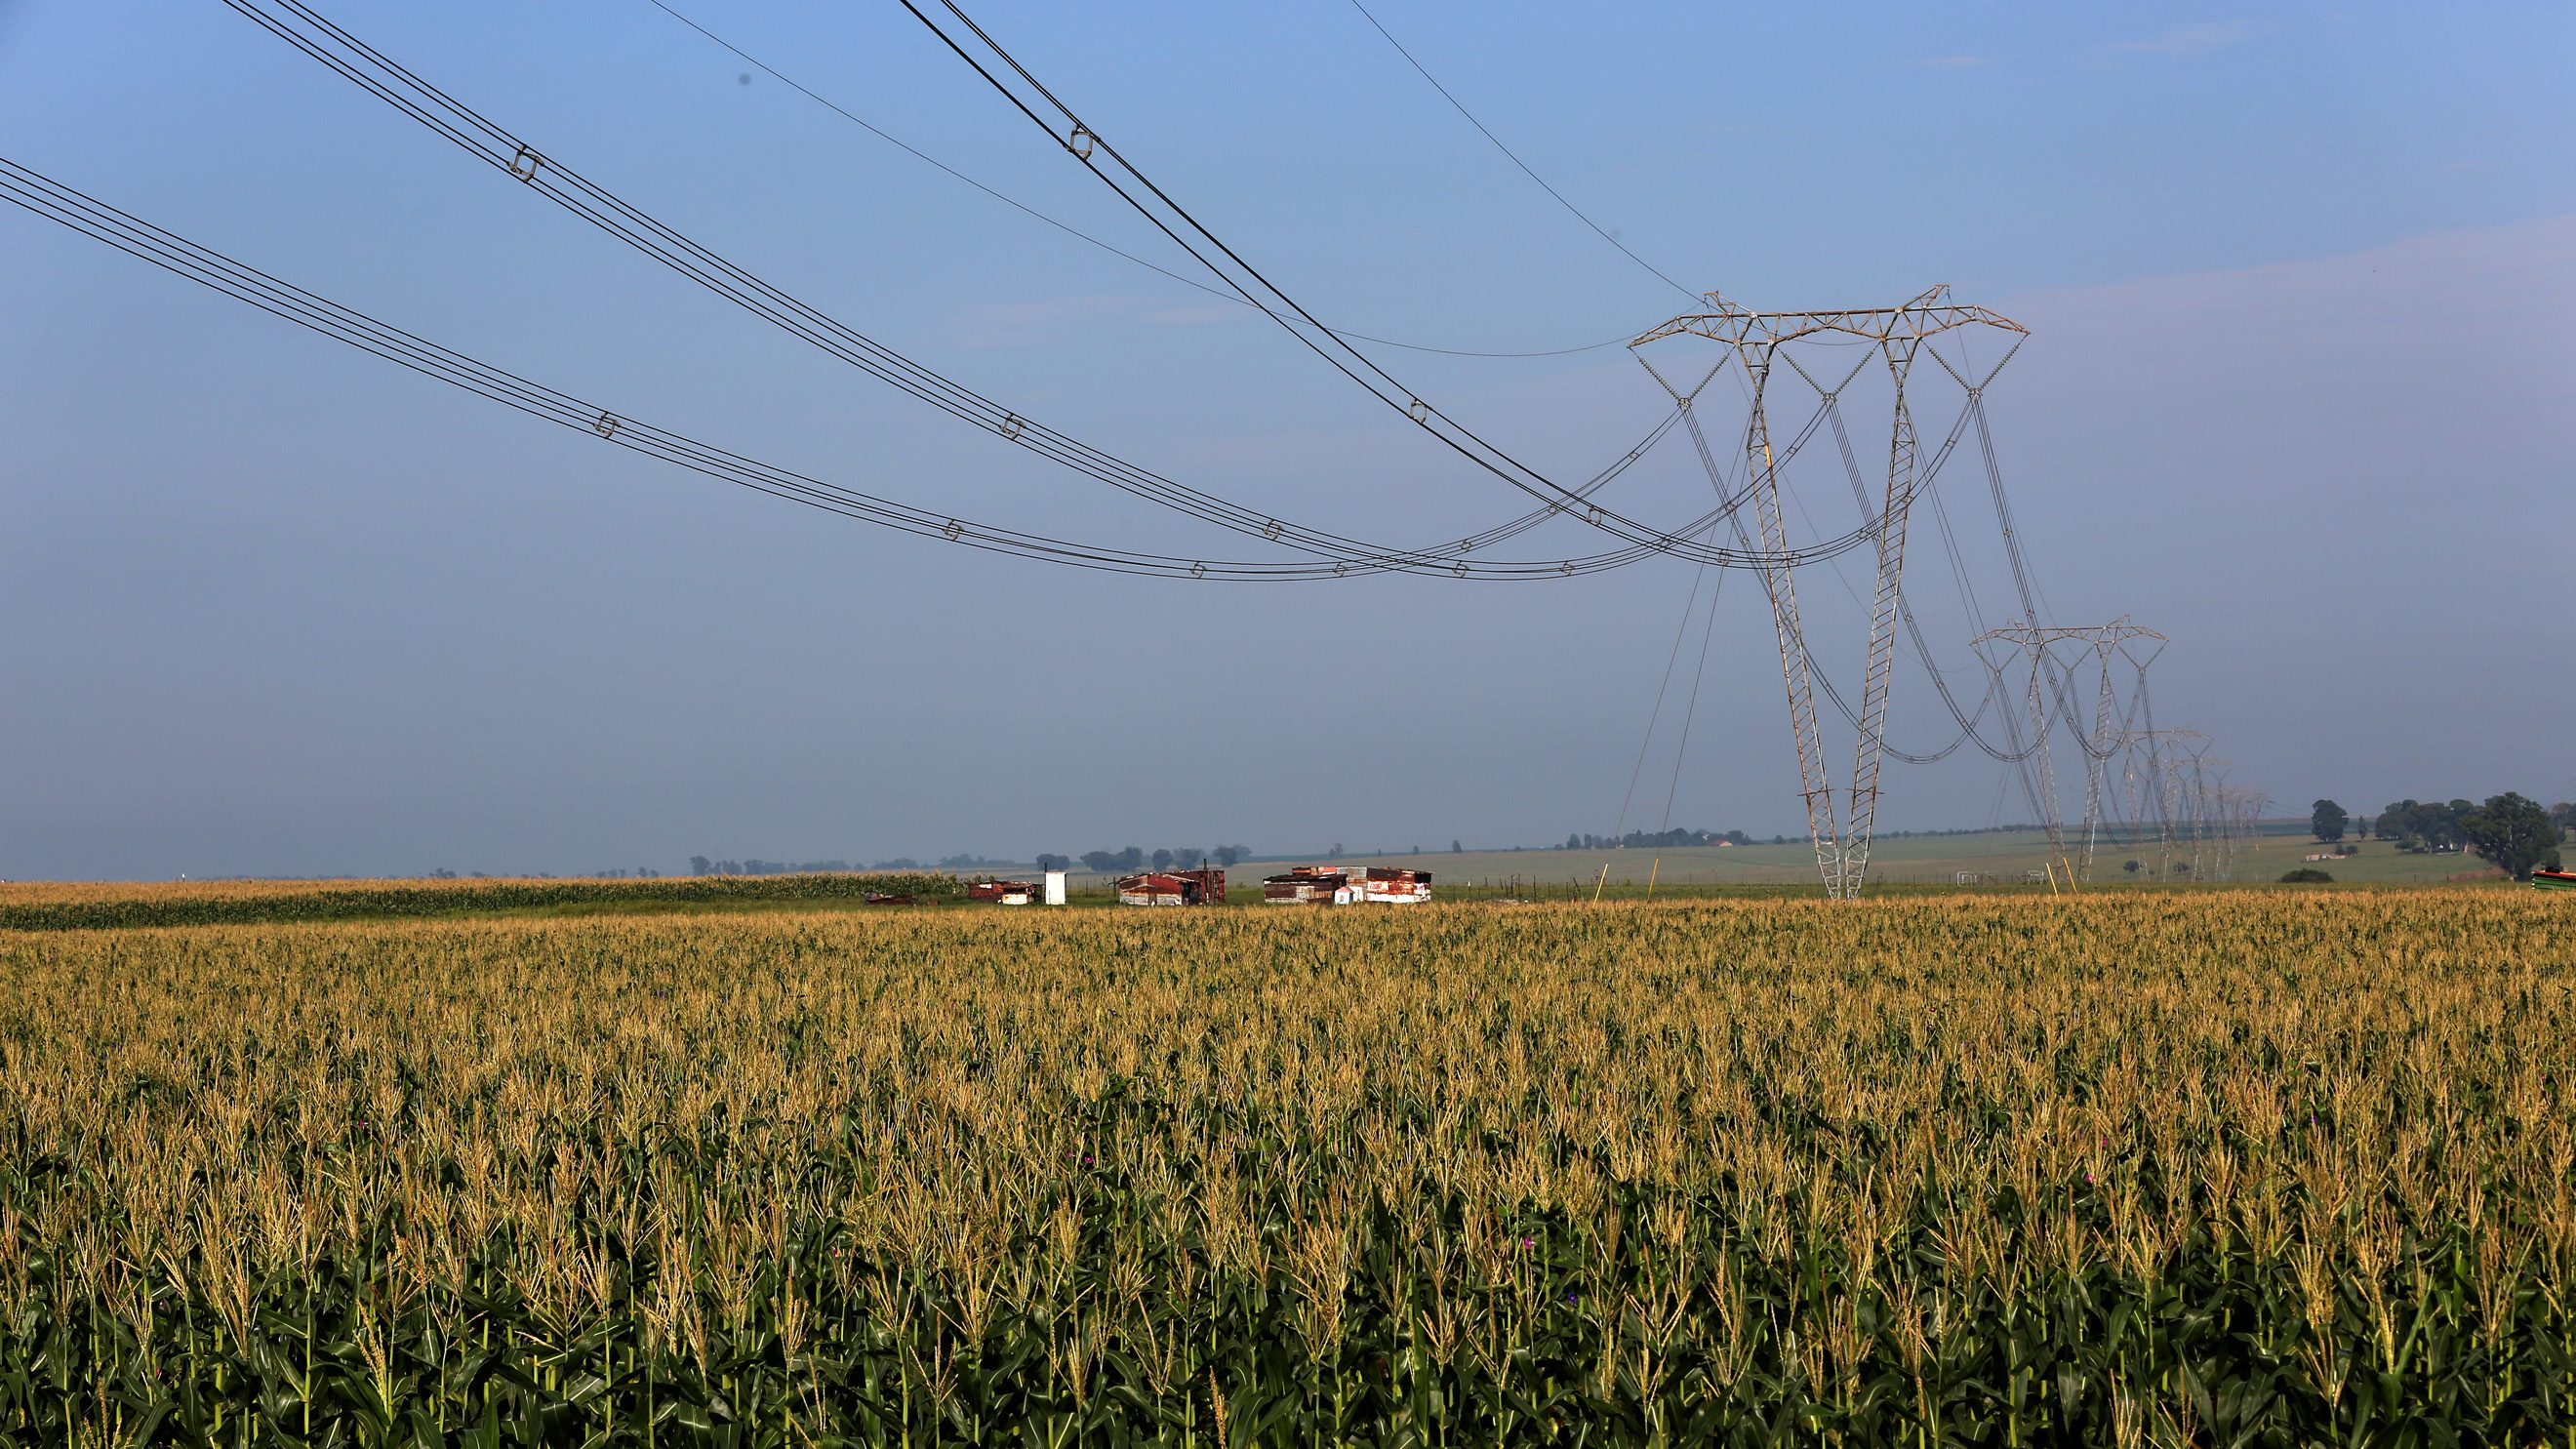 Electricity pylons of South Africa power utility Eskom are seen above a maize field in Mpumalanga province